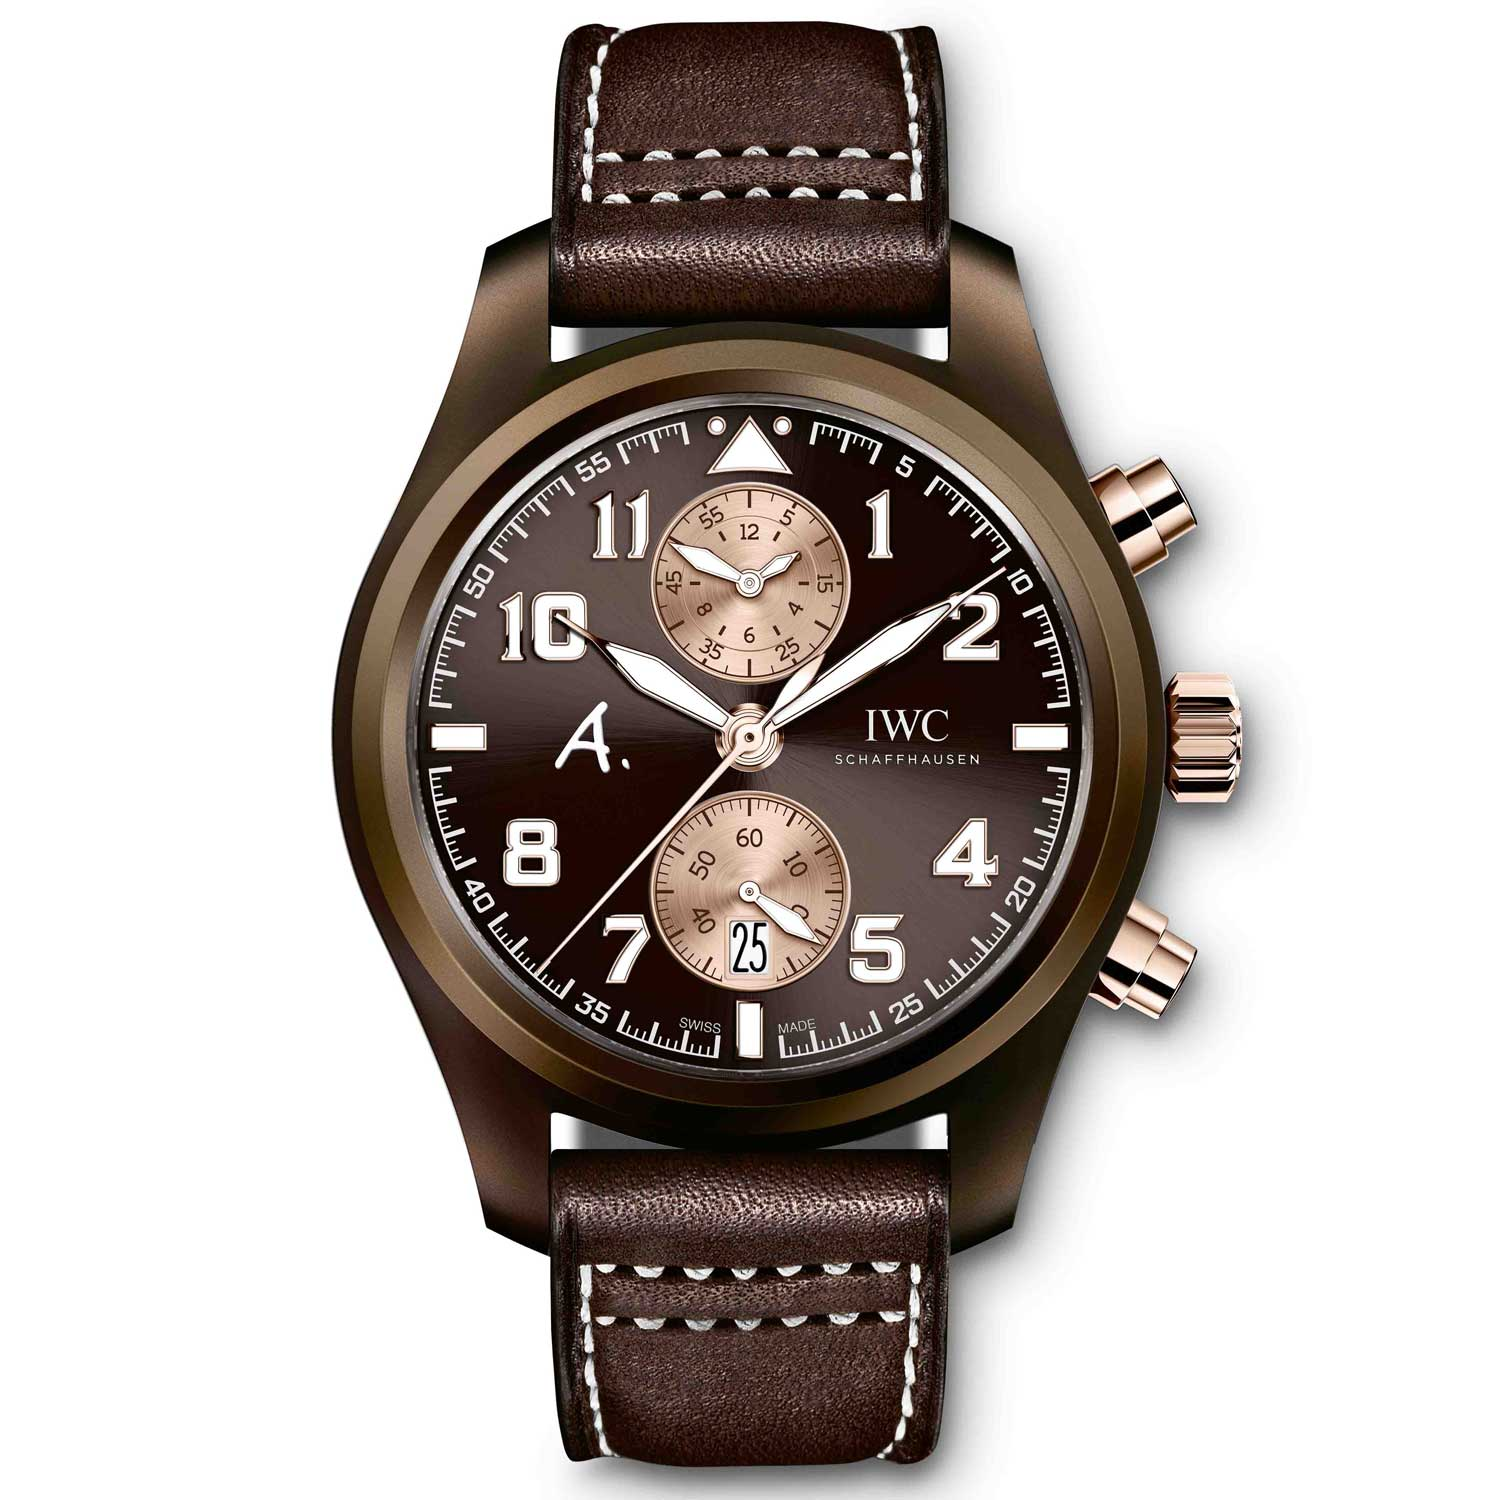 """IWC Pilot's Watch Chronograph Edition """"The Last Flight"""" commemorated the 70th anniversary Saint-Exupéry's last flight in 1944."""